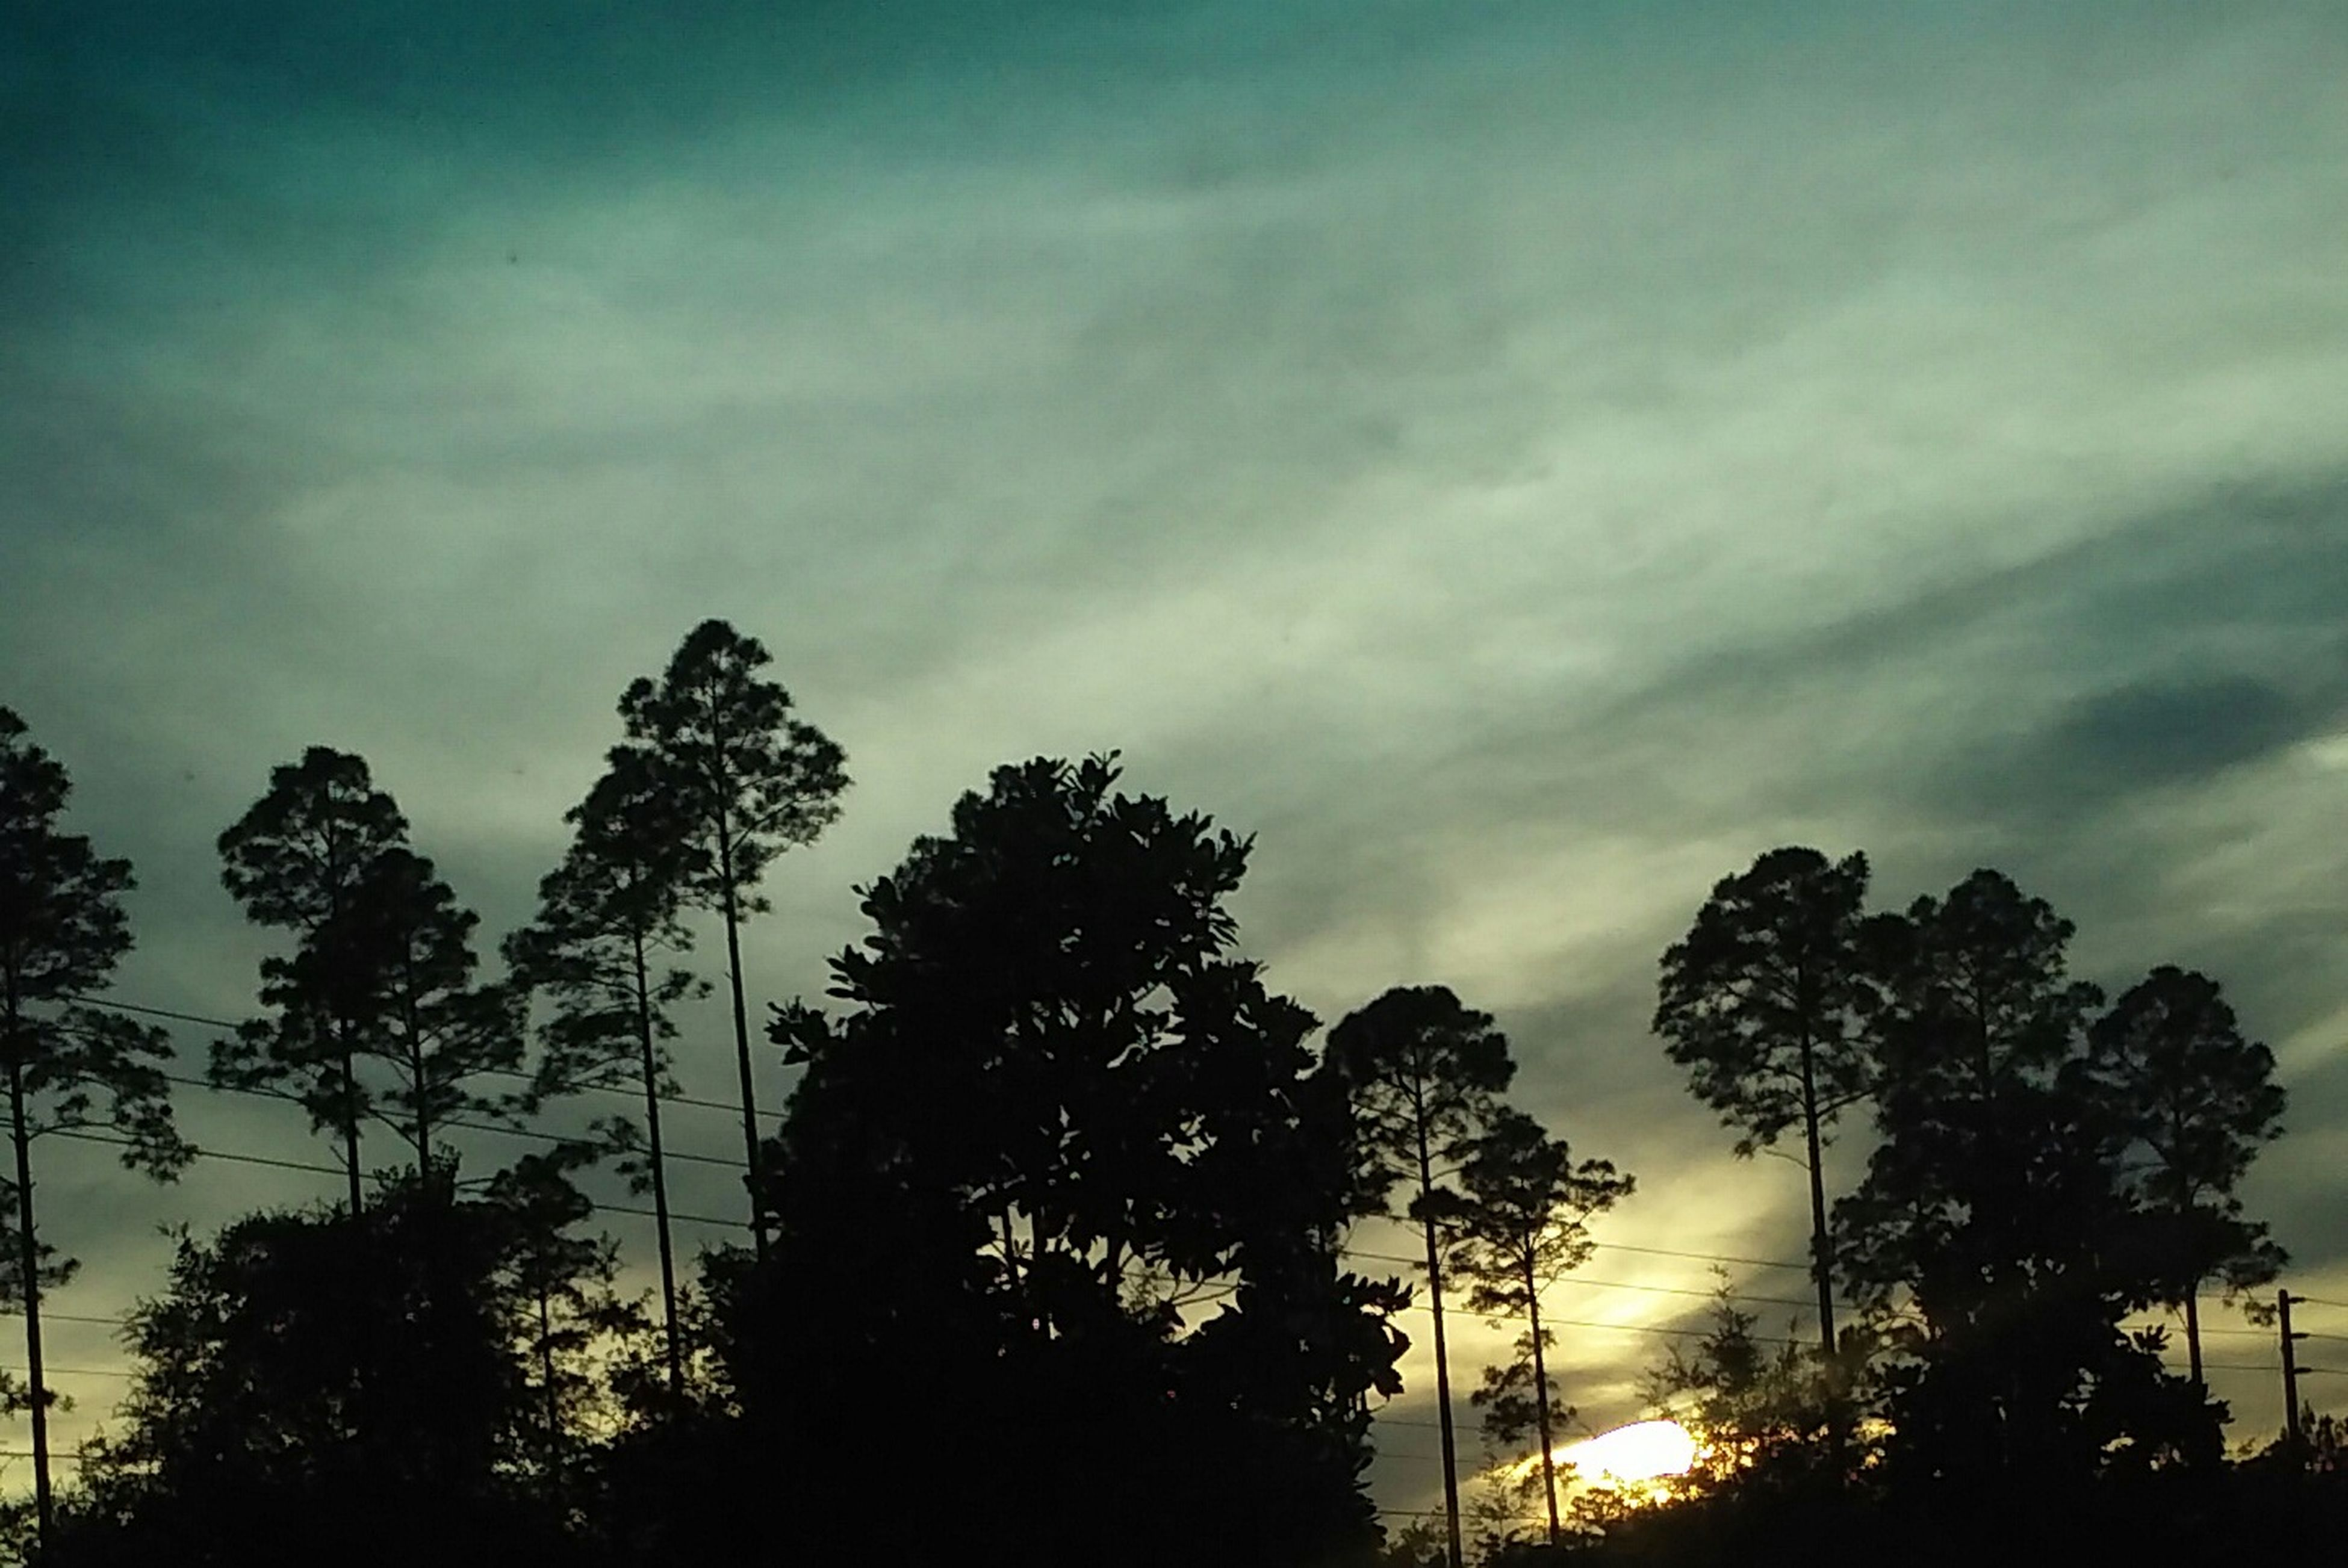 tree, silhouette, sky, low angle view, cloud - sky, tranquility, beauty in nature, cloudy, nature, tranquil scene, scenics, growth, sunset, cloud, dusk, branch, outdoors, no people, overcast, idyllic